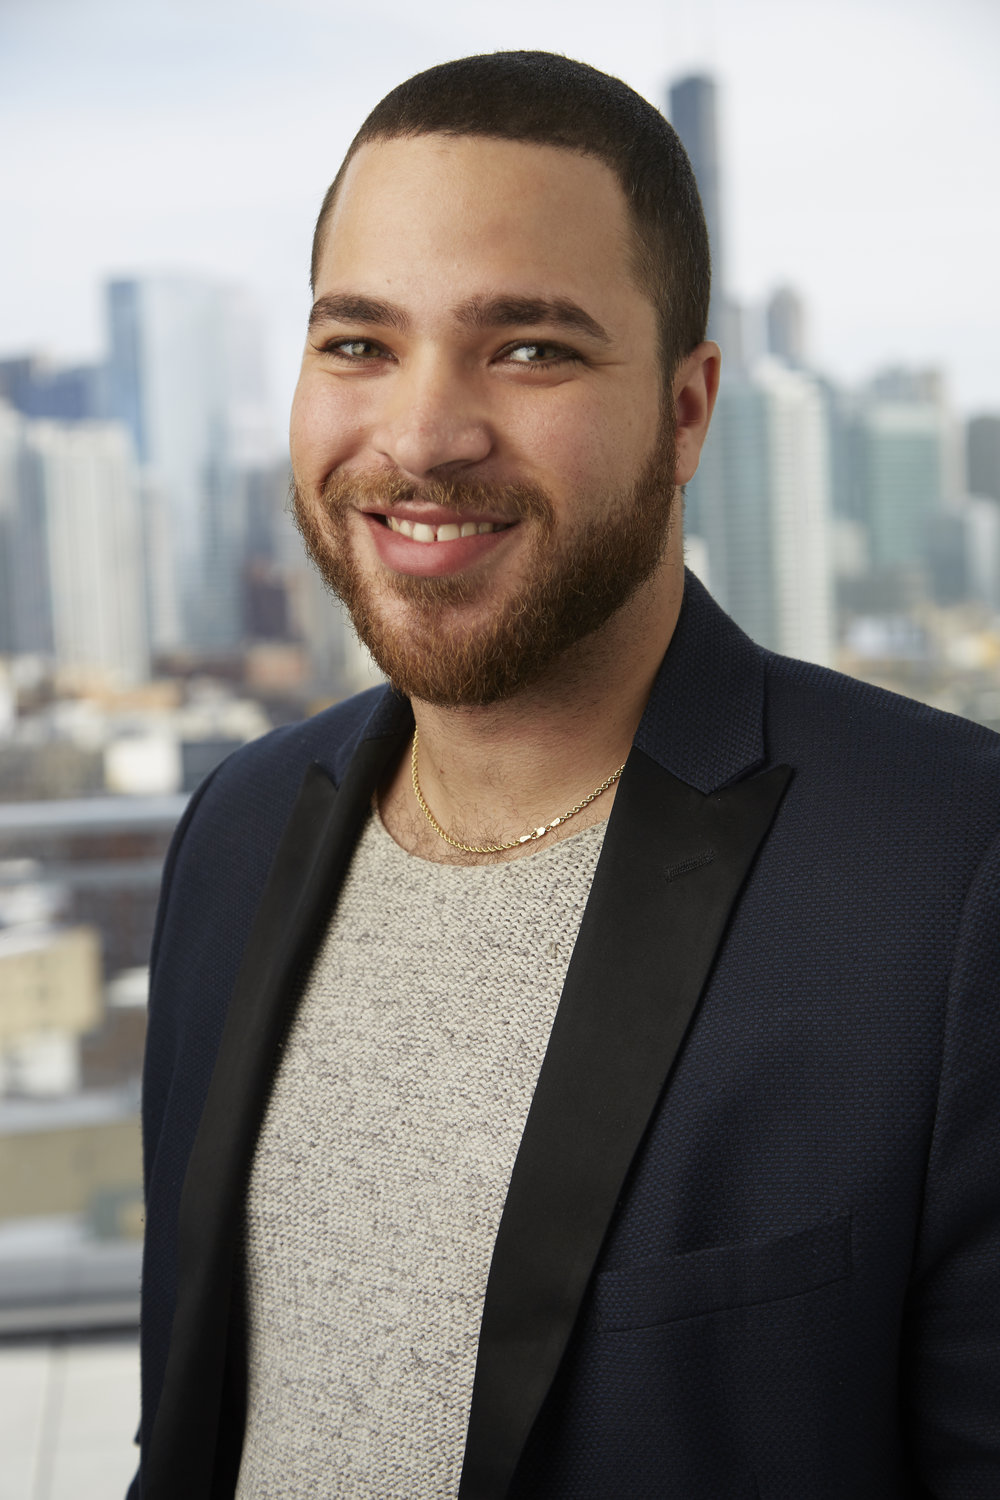 Ashton Irby - Ashton is a veteran in the luxury rental business. He has worked as a leasing agent for many of the properties and knows first hand what it takes to find the perfect apartment! He is also a team leader and trains and manages new CRG agents.